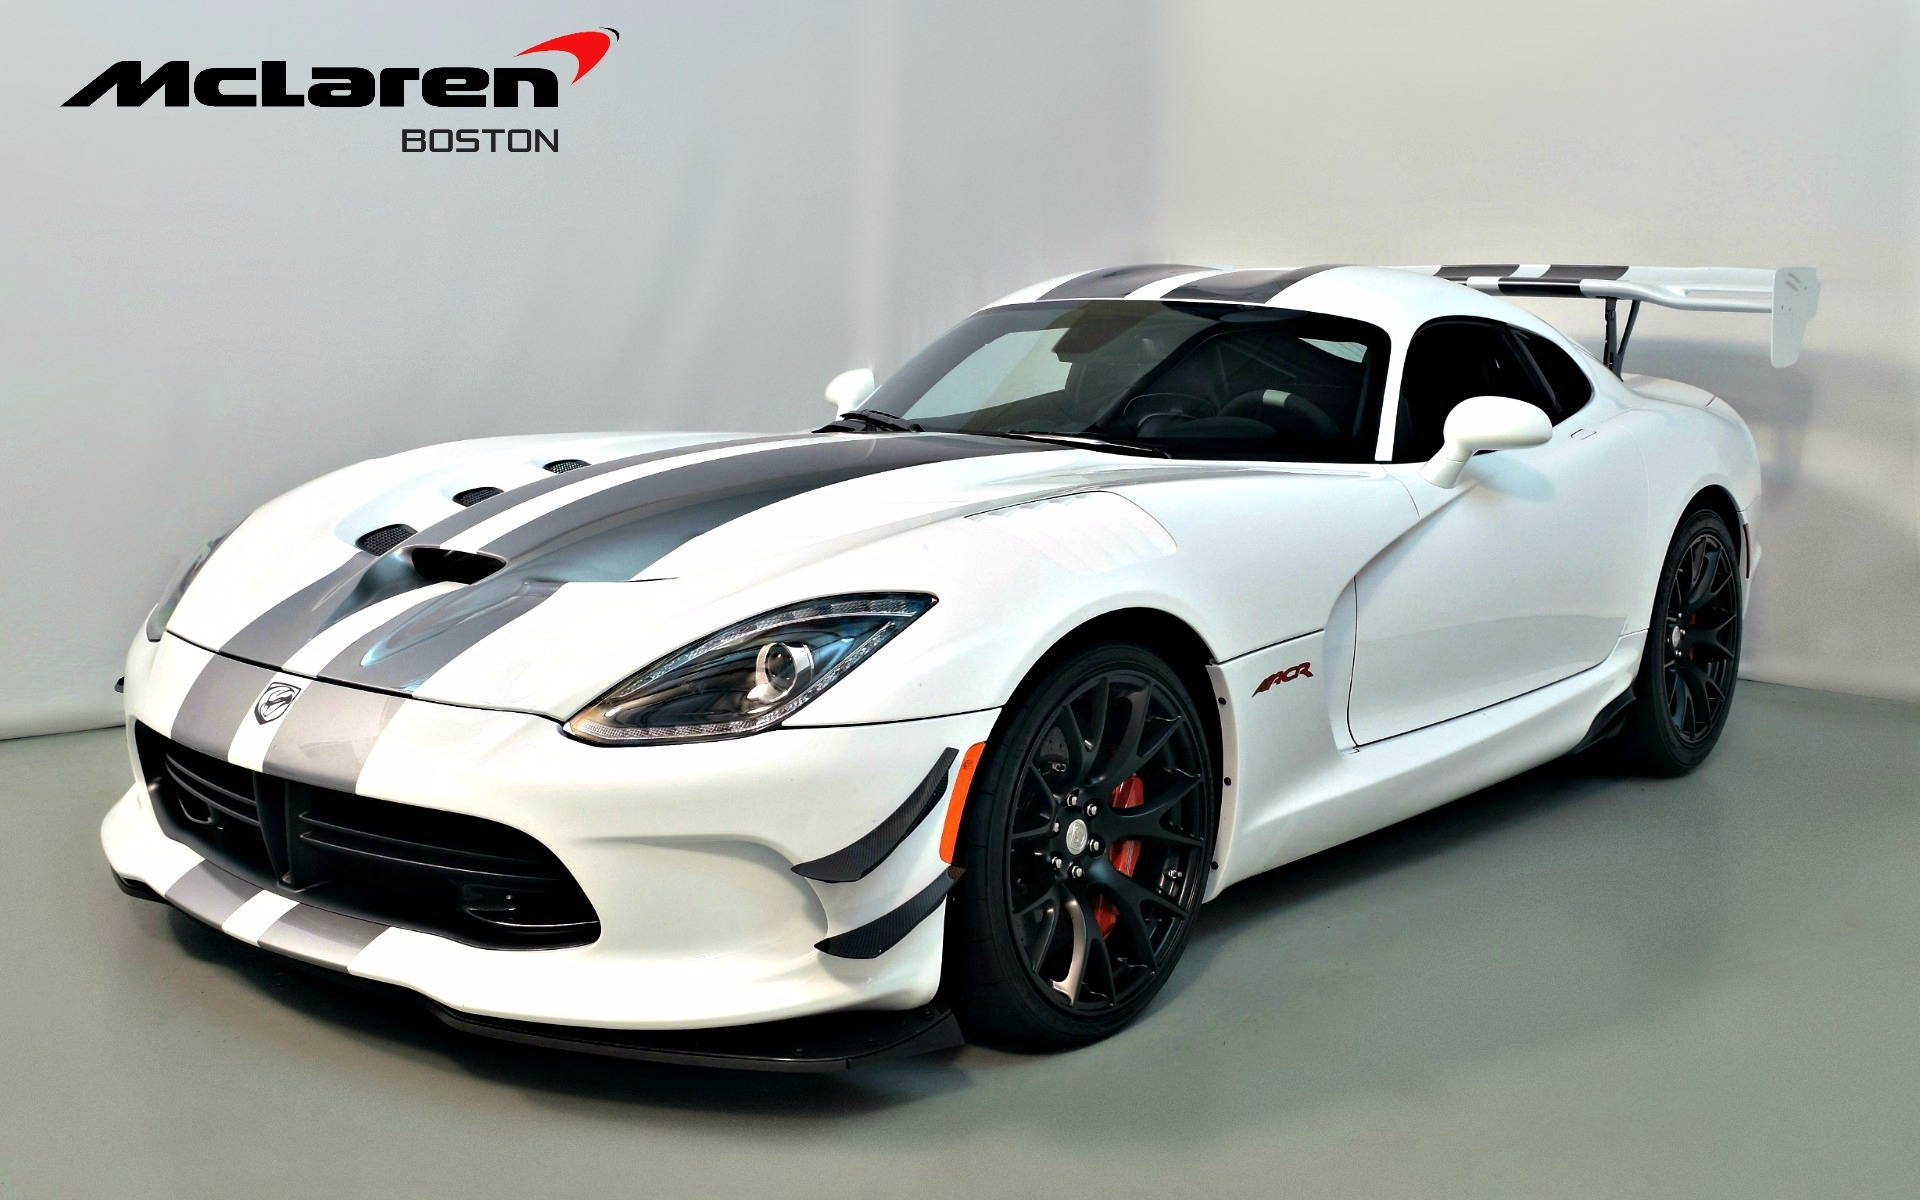 Dodge Viper 1996 >> 2016 Dodge Viper ACR For Sale in Norwell, MA 100487 | Mclaren Boston